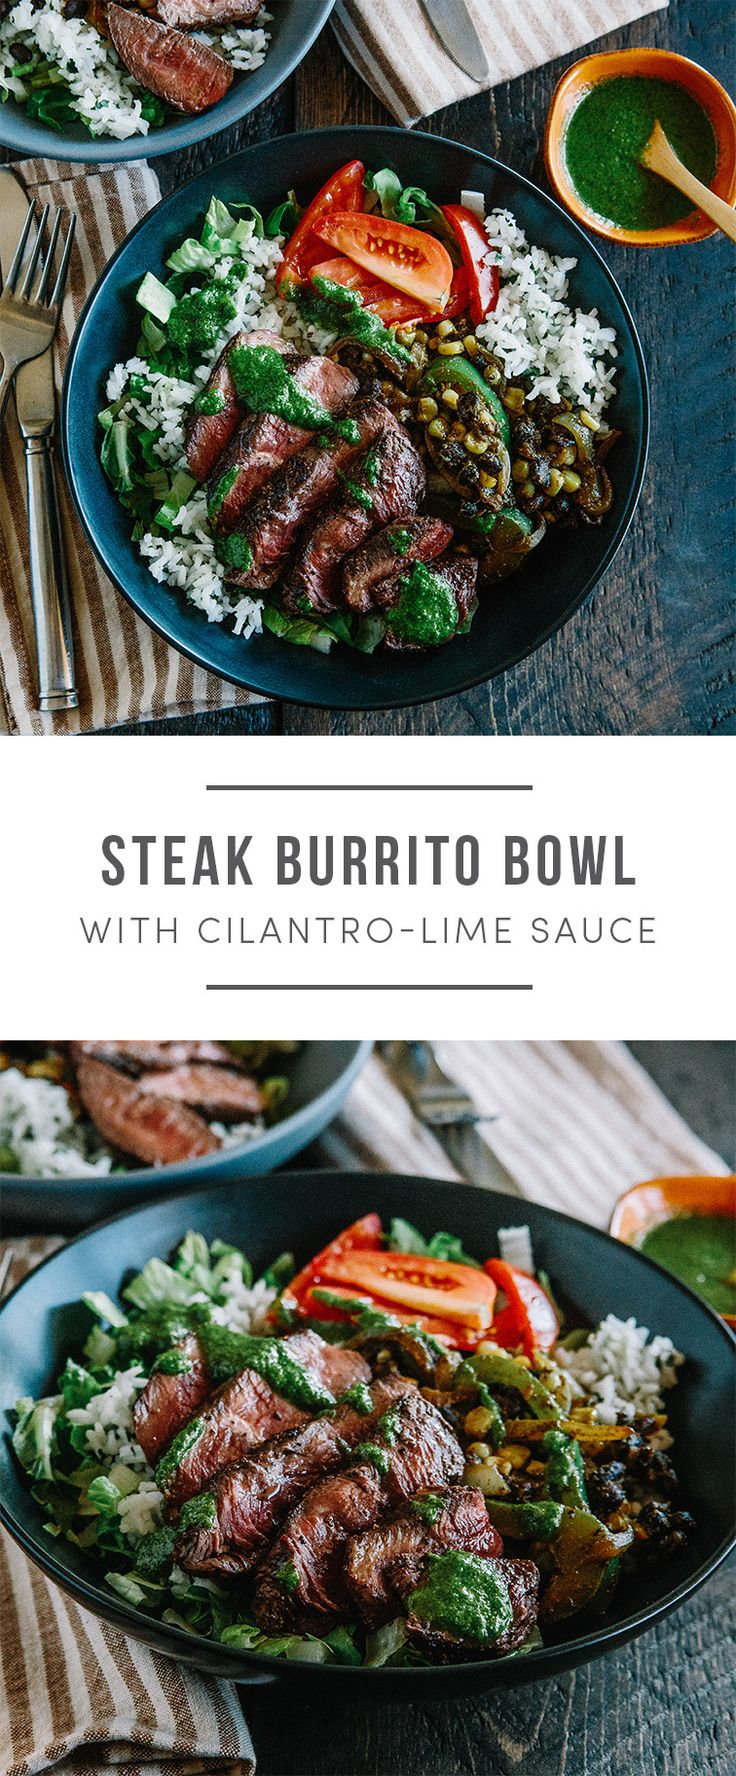 Steak Burrito Bowl with rice, cilantro-lime sauce, tomatoes, corn and beans. It's Gluten-free! Recipe here: https://greenchef.com/recipes/family-steak-burrito-bowl?utm_source=pinterest&utm_medium=link&utm_campaign=social&utm_content=Steak-Burrito-Bowl-Fam